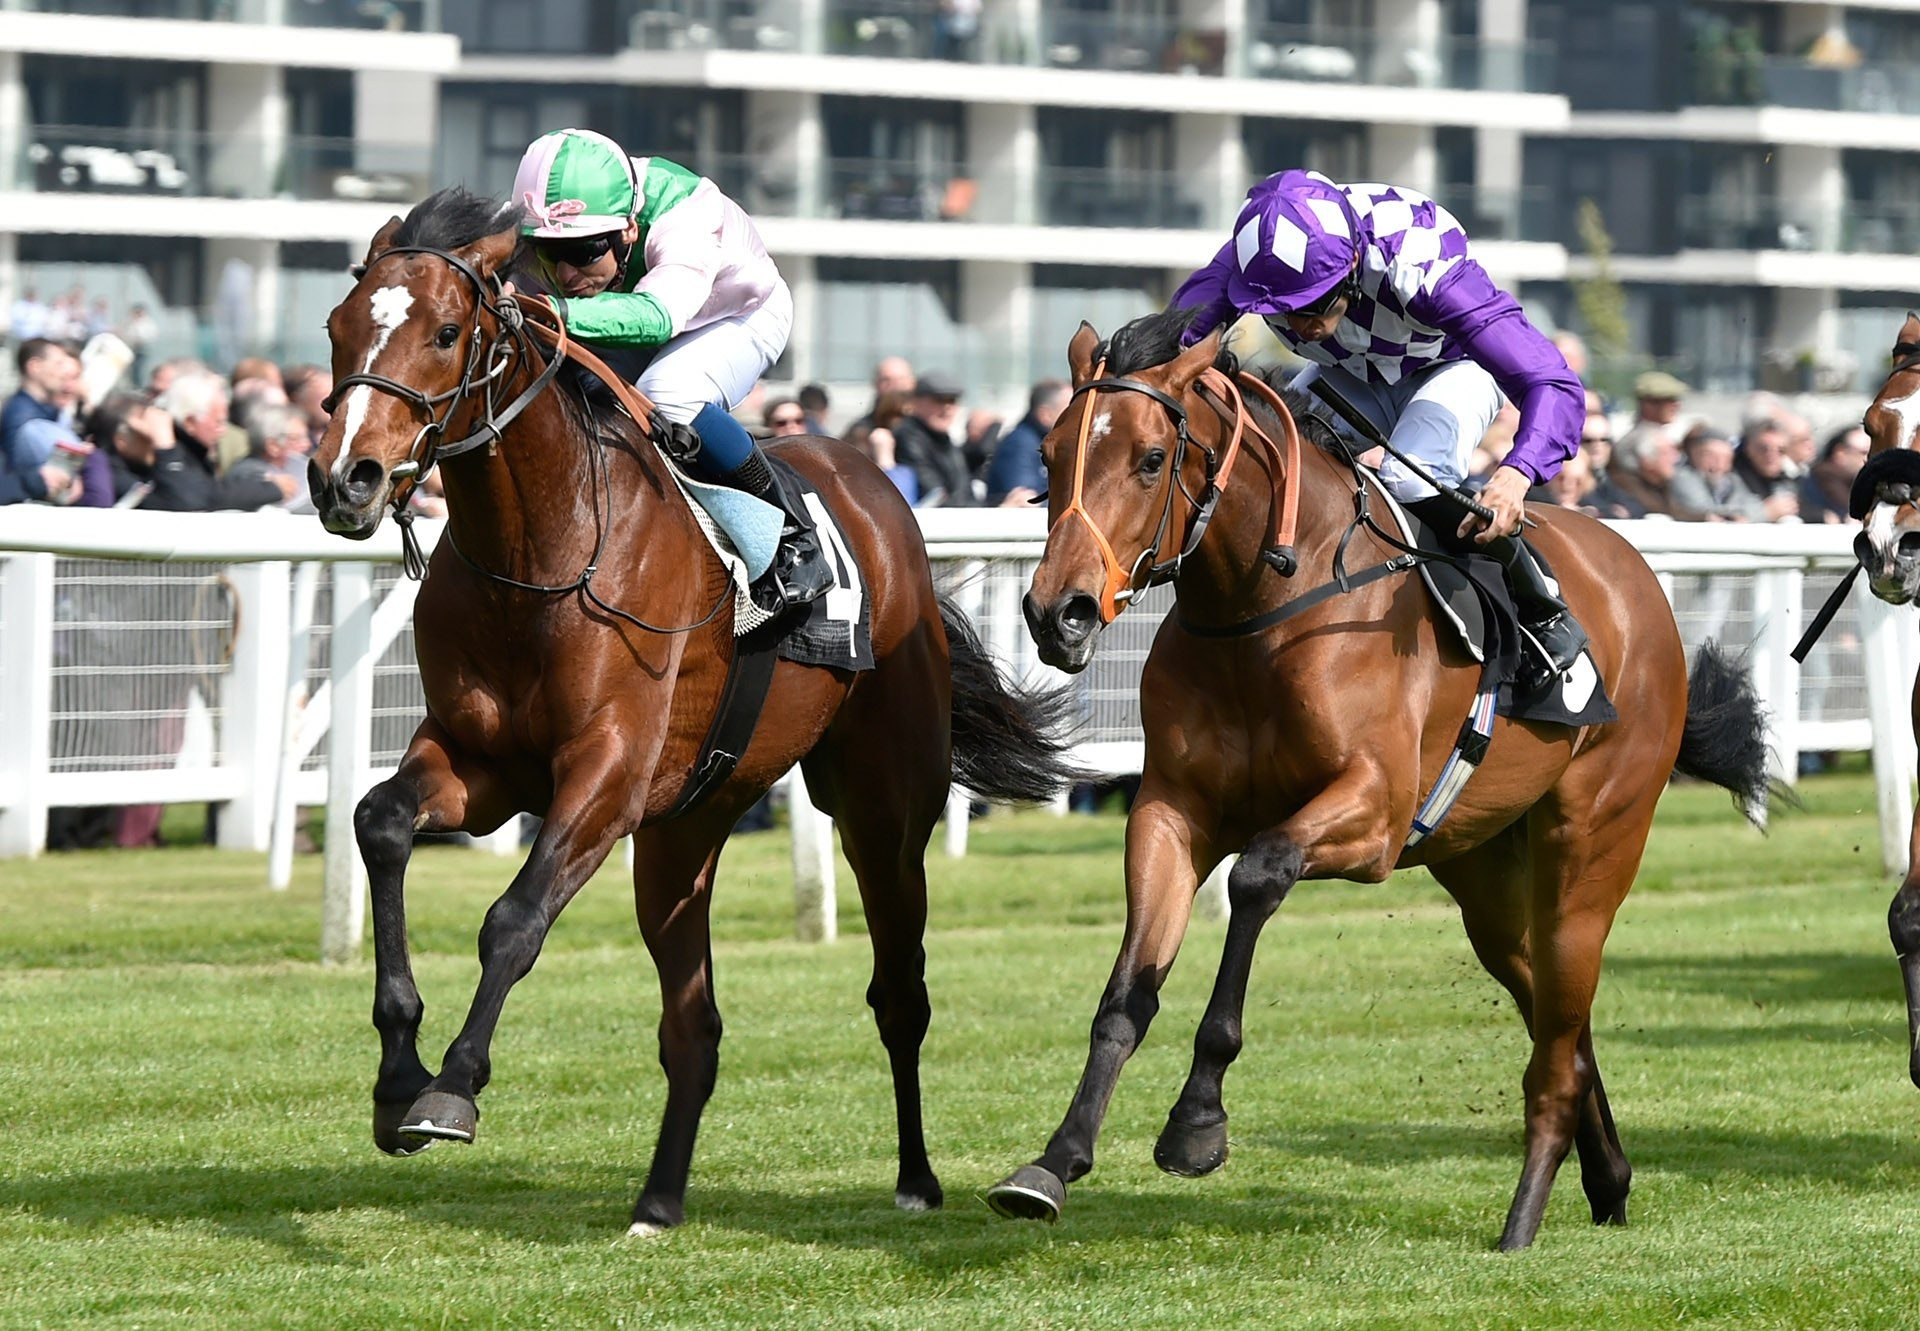 Highland Chief (Gleneagles) winning at Newbury